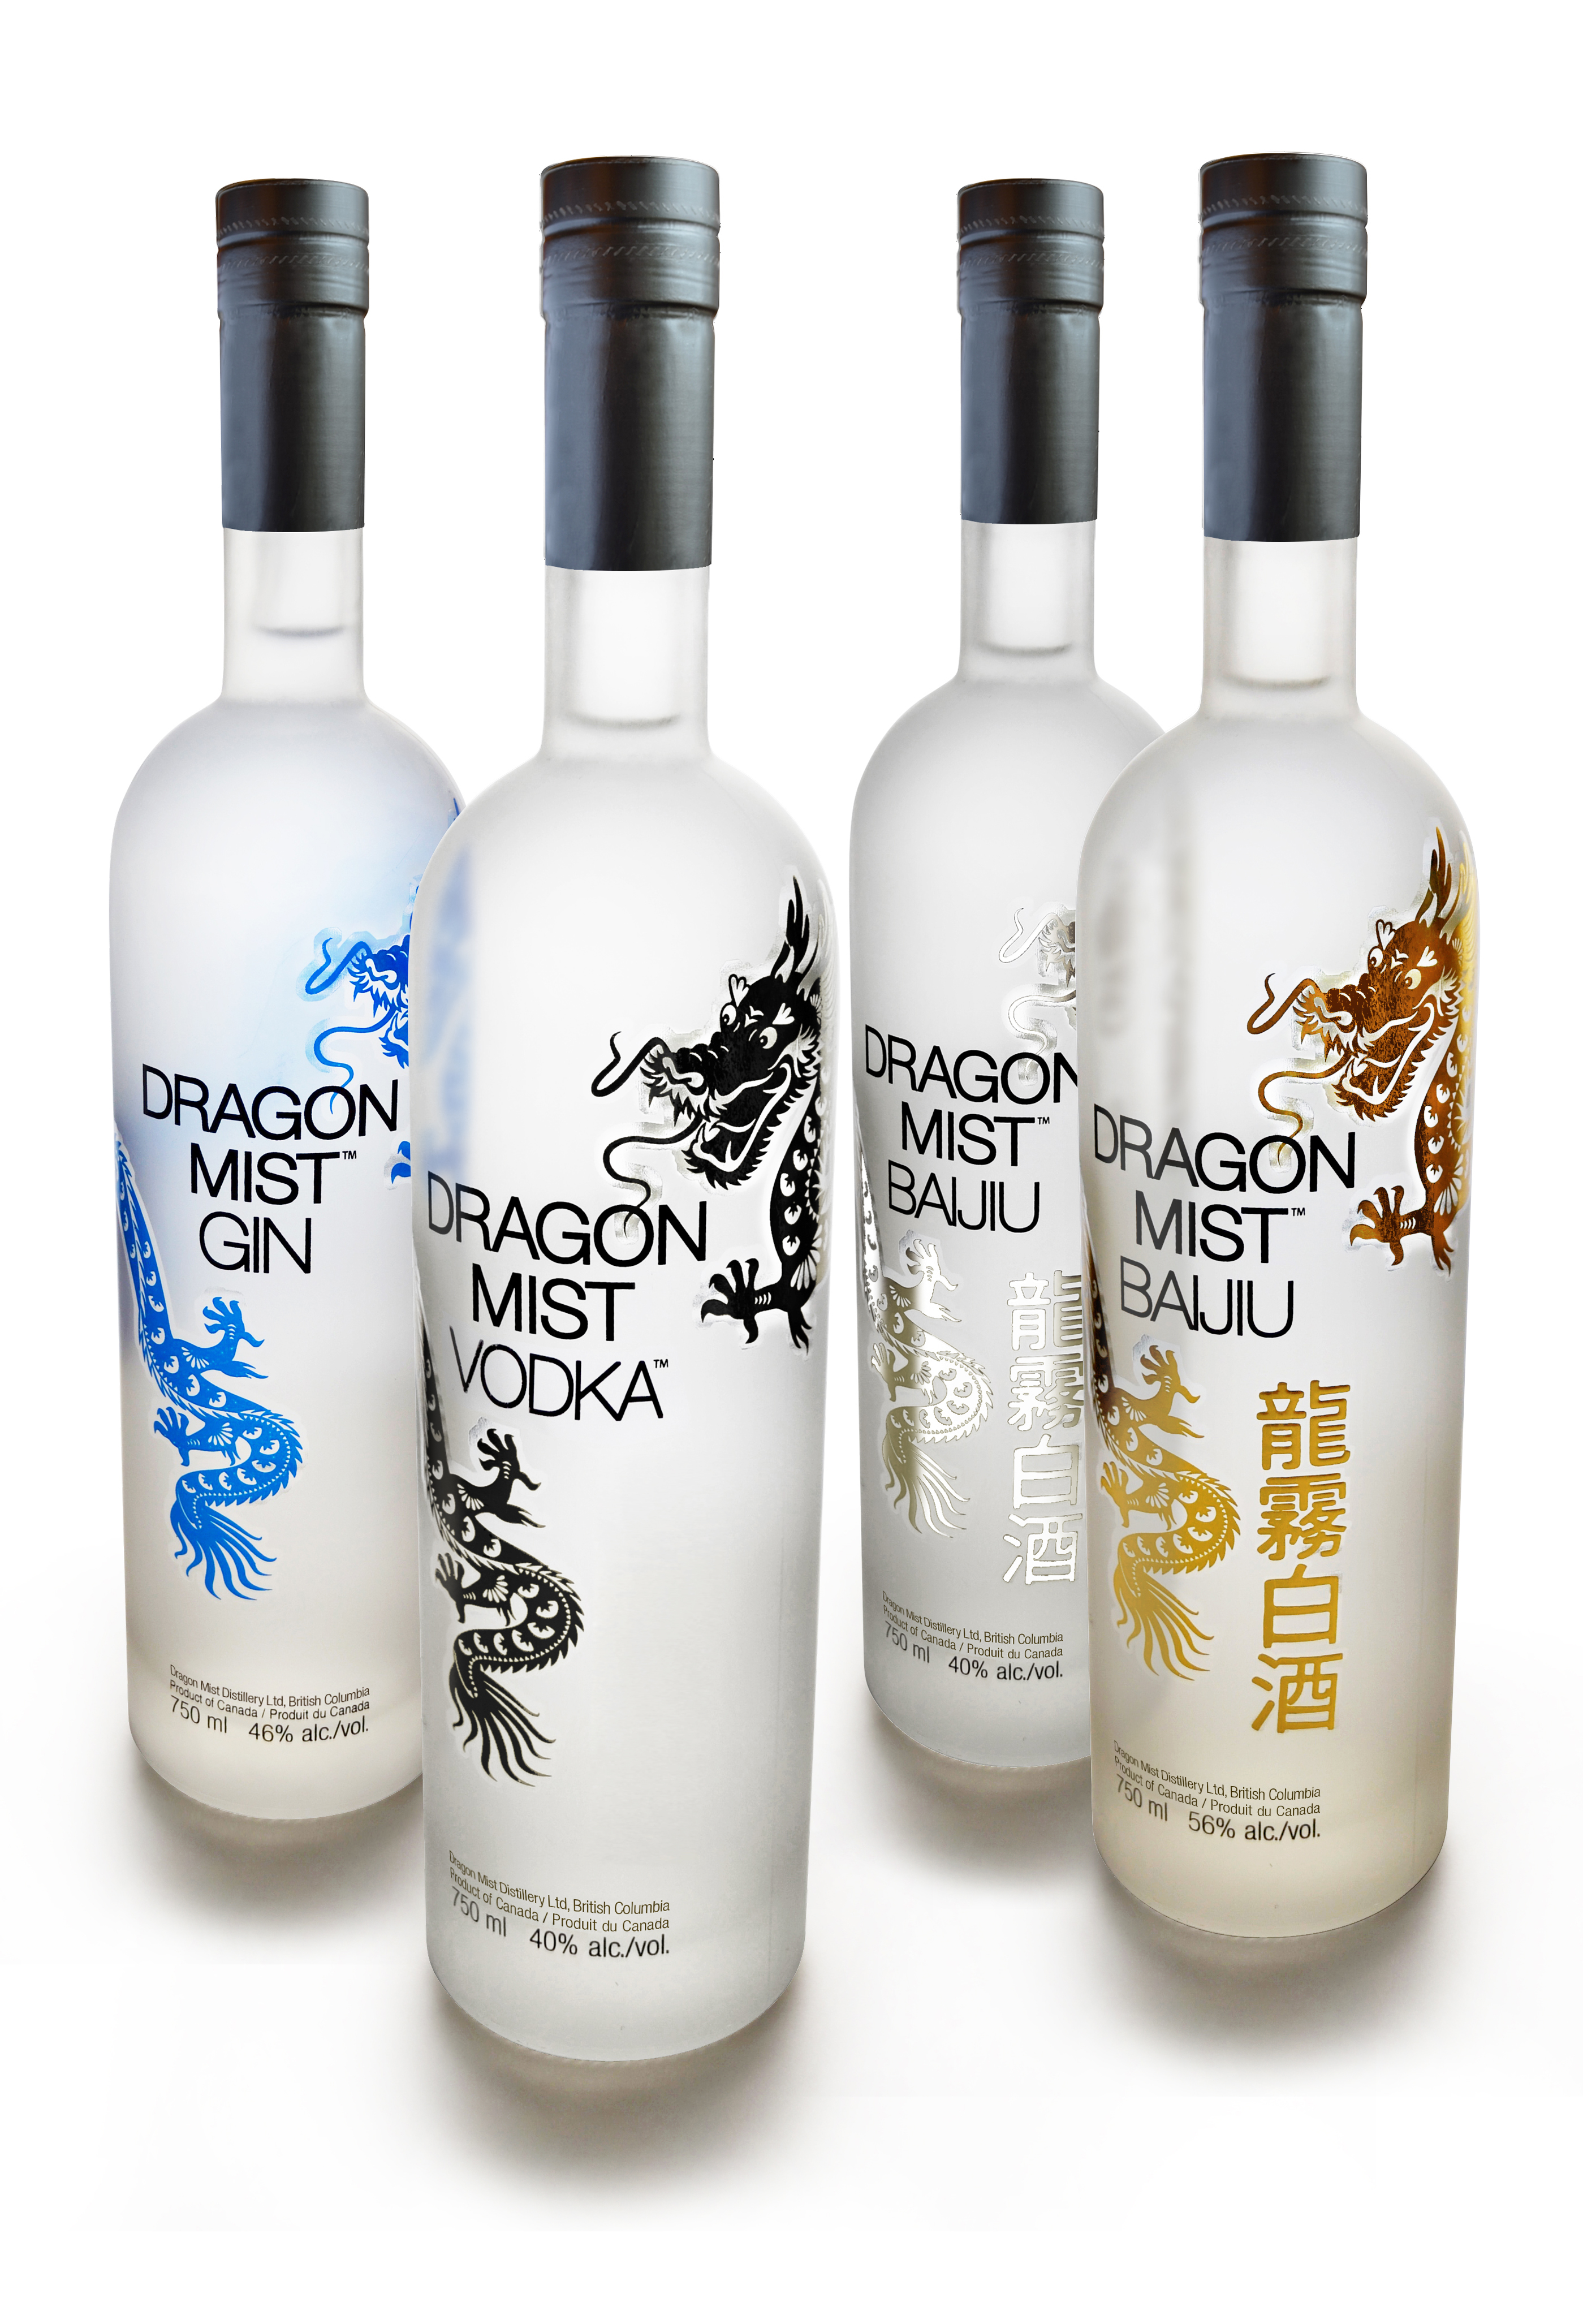 Dragon Mist Gin, Vodka, and Baijiu bottles combined